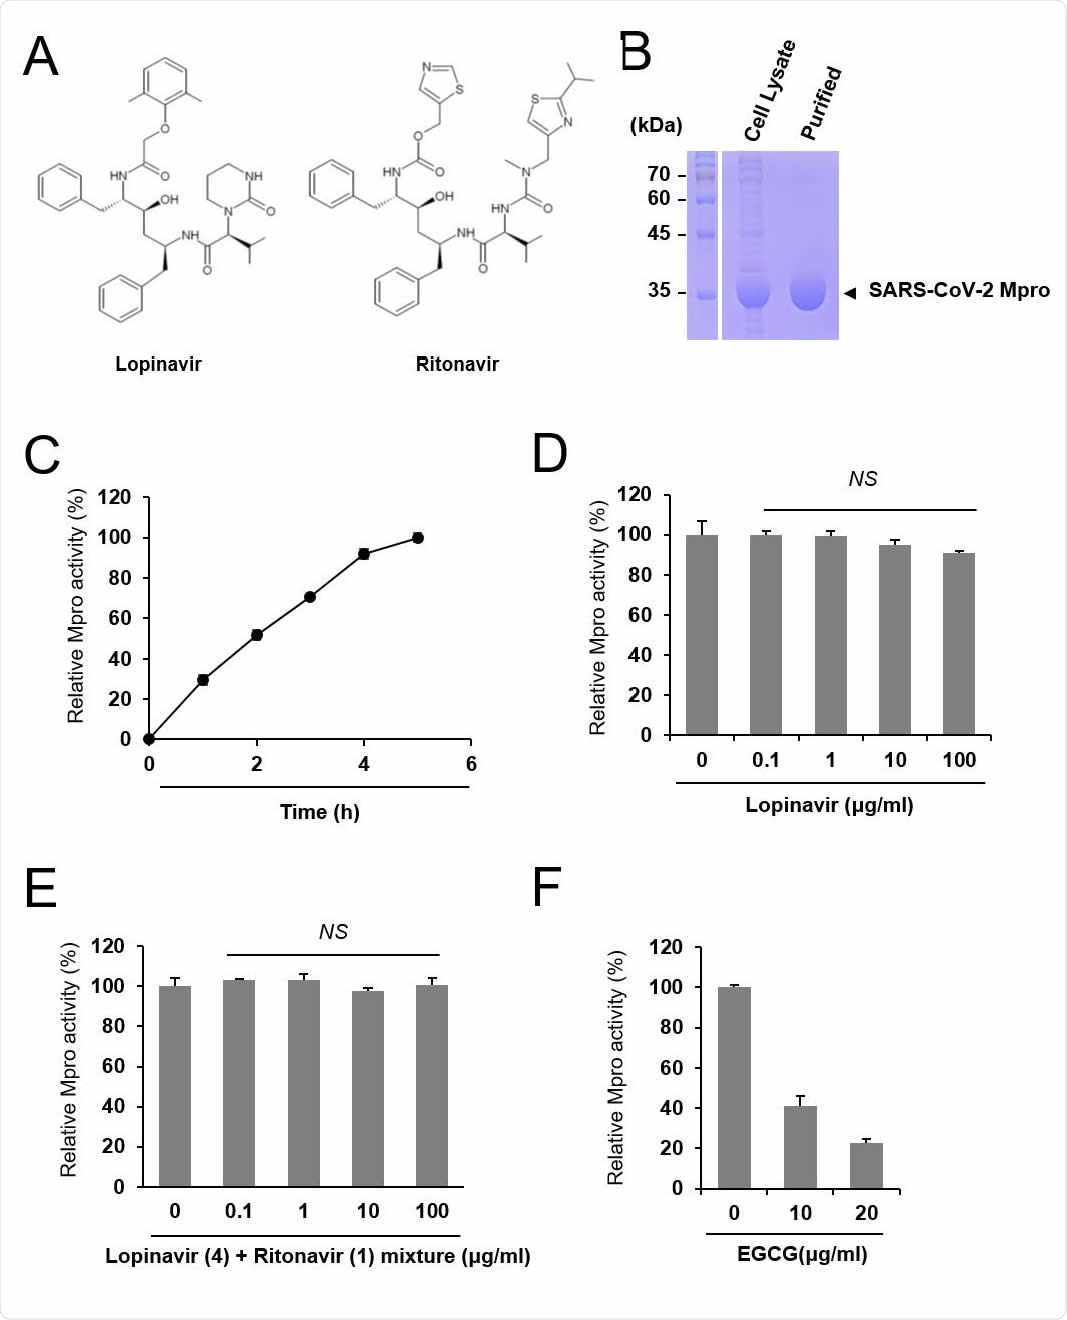 Lopinavir is ineffective to inhibit SARS-CoV-2 Mpro. (A) Chemical structure of lopinavir and ritonavir. (B) Purification of SARS-CoV-2 Mpro. Cell lysate and purified Mpro protein were subject to SDS-PAGE. (C) Measurement of the relative Mpro activity over time. Activity is measured relative to maximal activity at 5 hr. (D) Lopinavir did not inhibit Mpro. Indicated concentrations of lopinavir were incubated with Mpro and the relative protease activity was determined. The Mpro activity was measured in quadruple and the mean and standard deviation are shown. NS, not significant. (E) Mixtures of lopinavir and ritonavir at a weight ratio of 4:1 were incubated with Mpro, and the relative protease activity was determined. (F) EGCG was incubated with Mpro, and the protease activity was examined as a positive control.